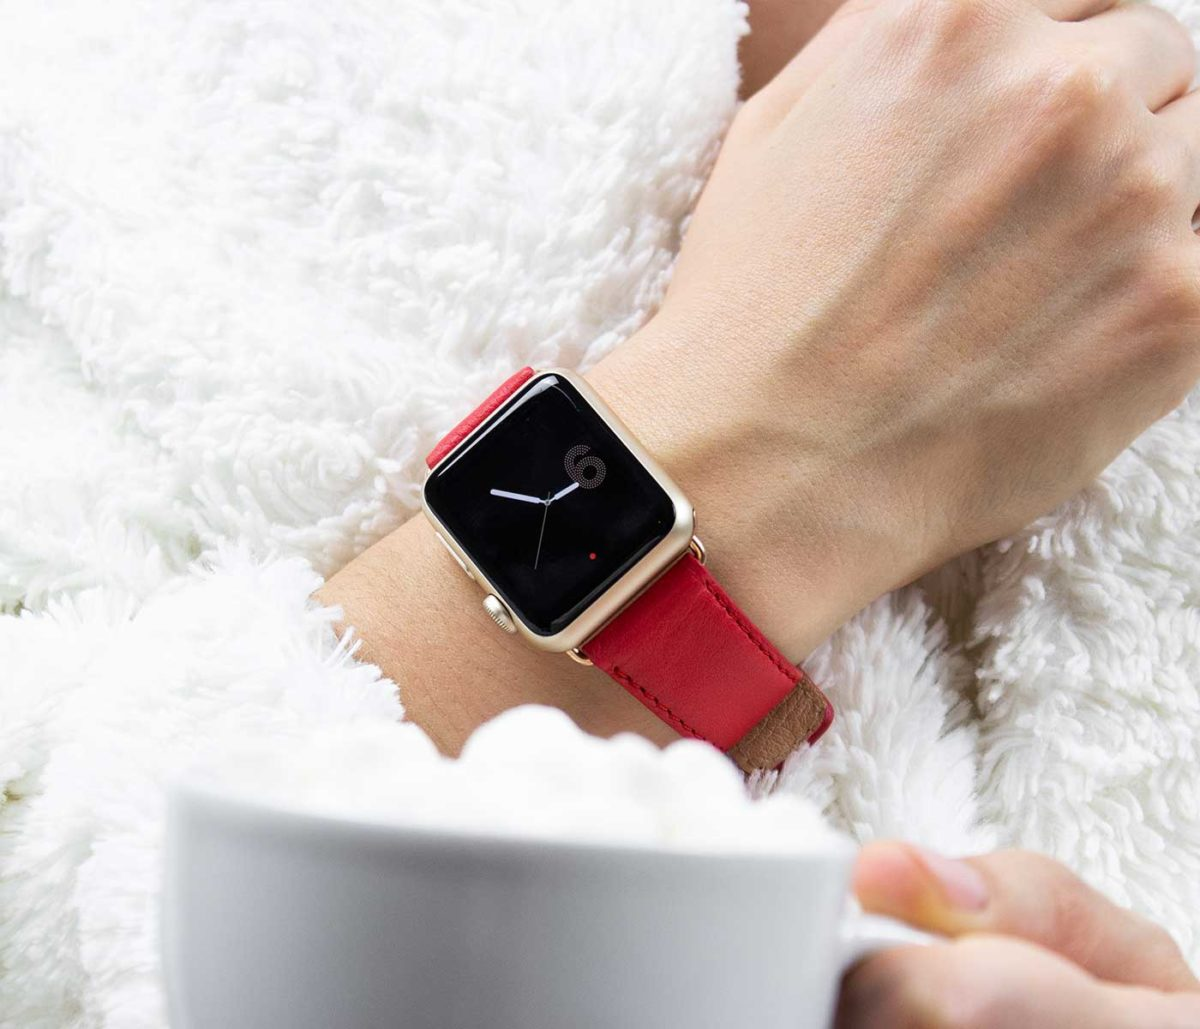 Coral-Apple-watch-red-nappa-band-close-to-awhite-fur-coat-bs